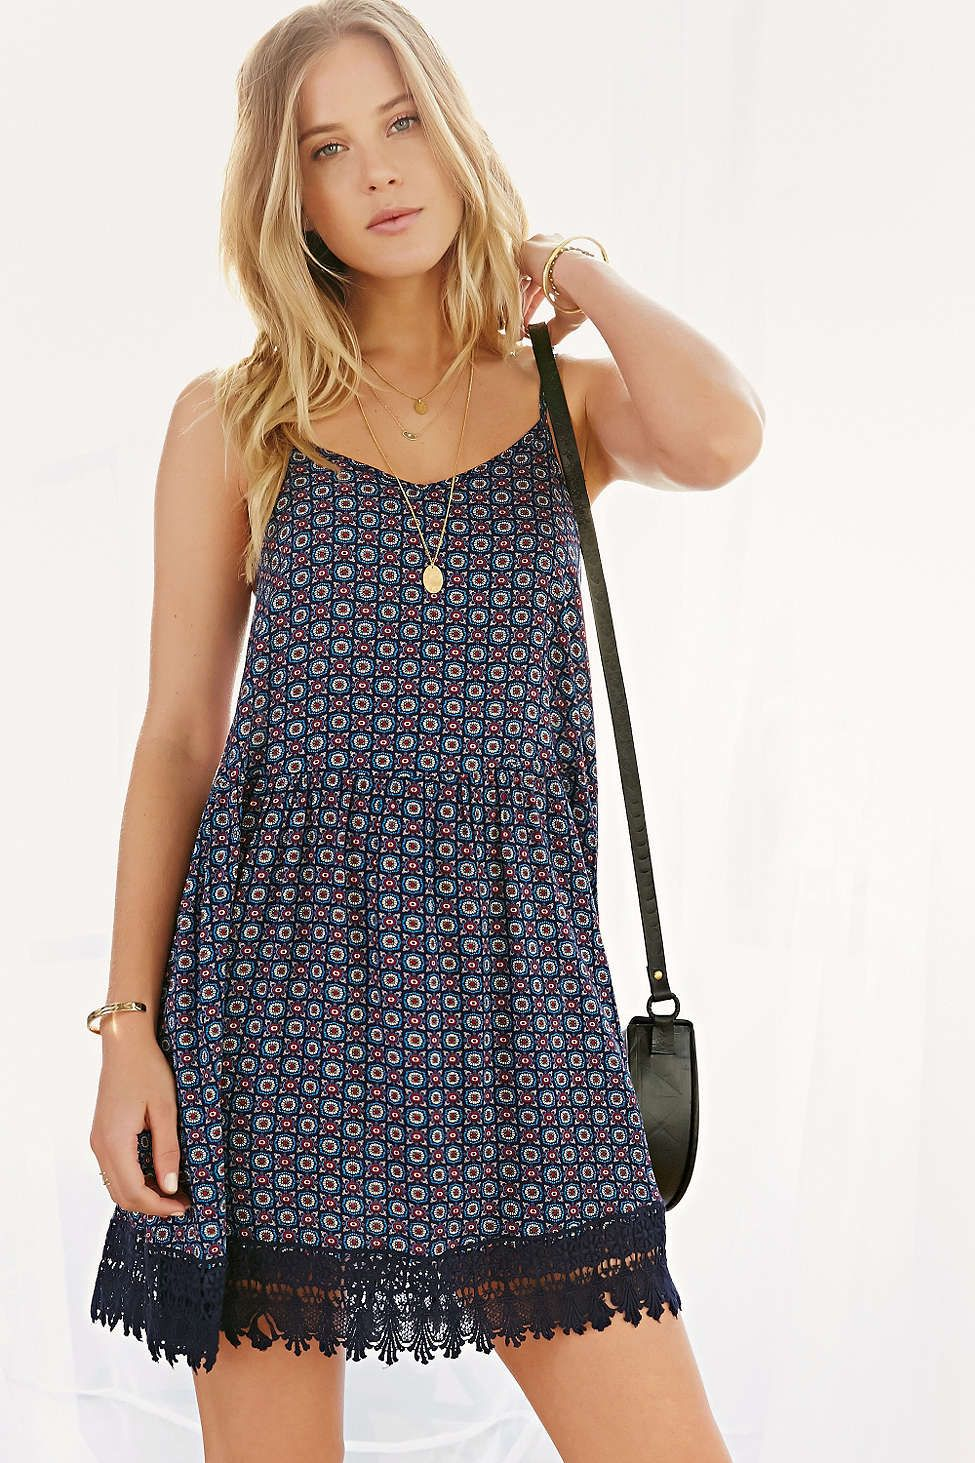 813a74fd5ec0 Love Sadie Crochet-Trim Trapeze Dress - Urban Outfitters | W summer ...